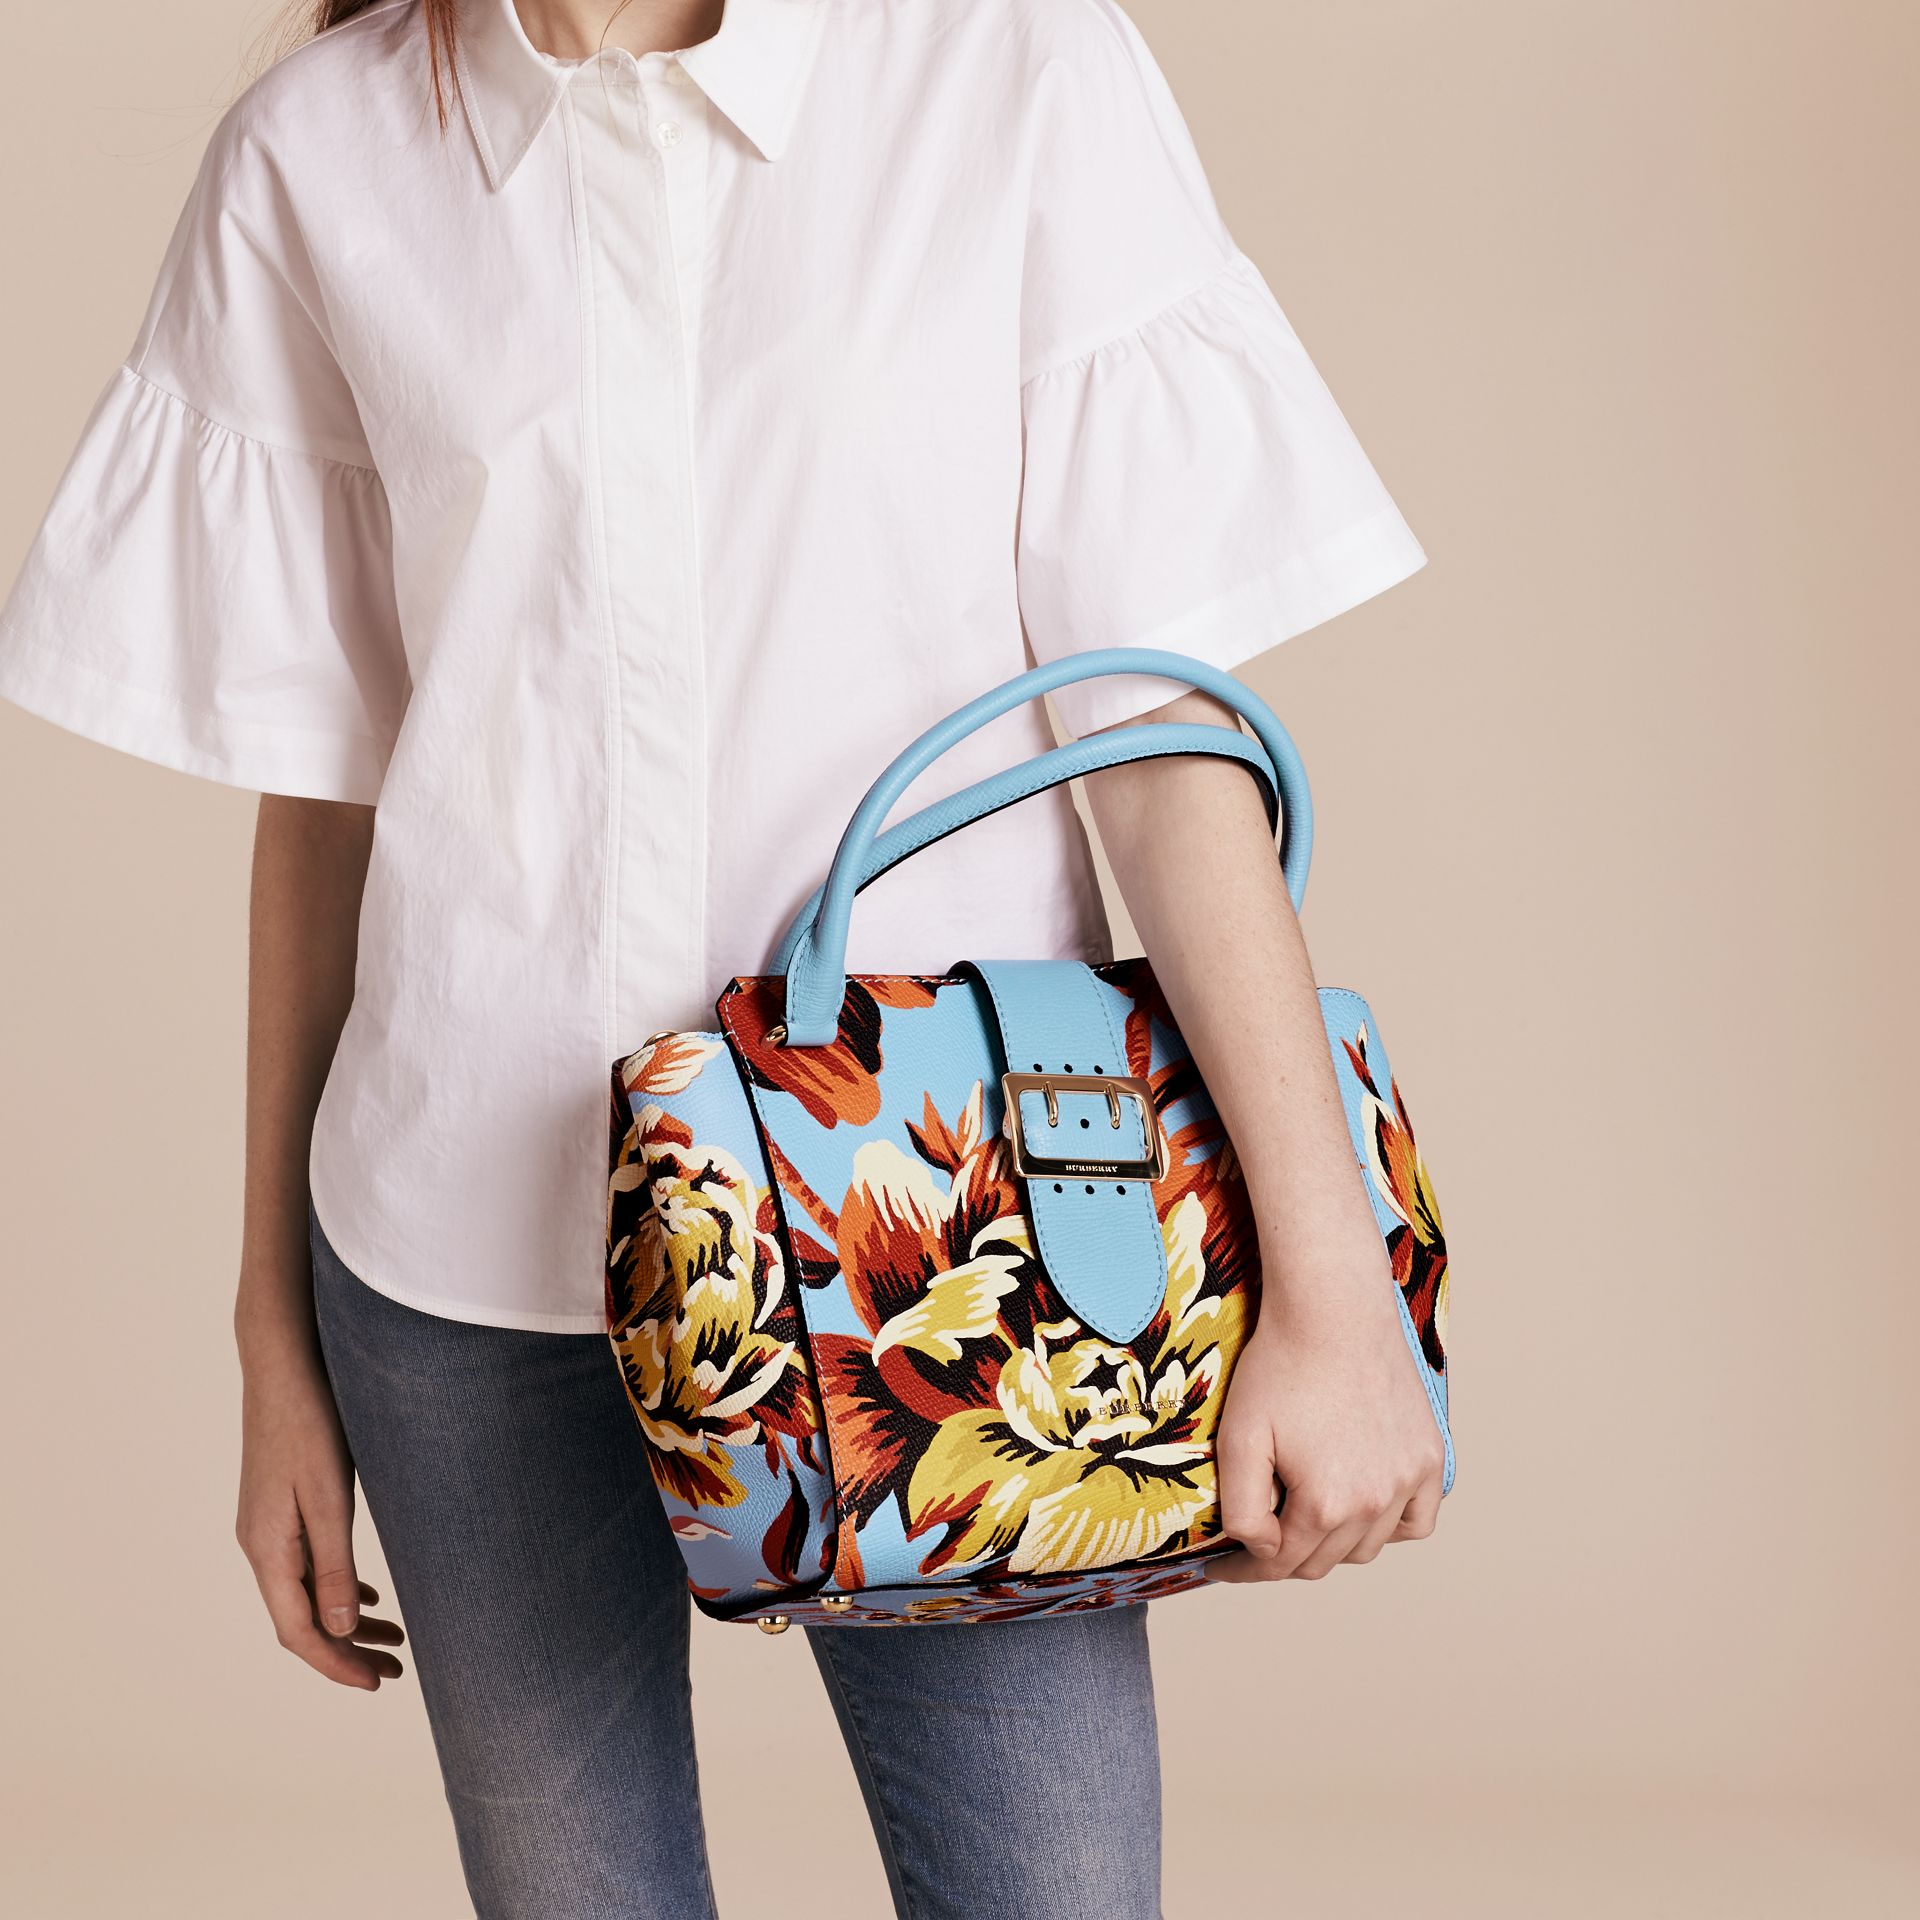 Pale blue/vibrant orange The Medium Buckle Tote in Peony Rose Print Leather Pale Blue/vibrant Orange - gallery image 3